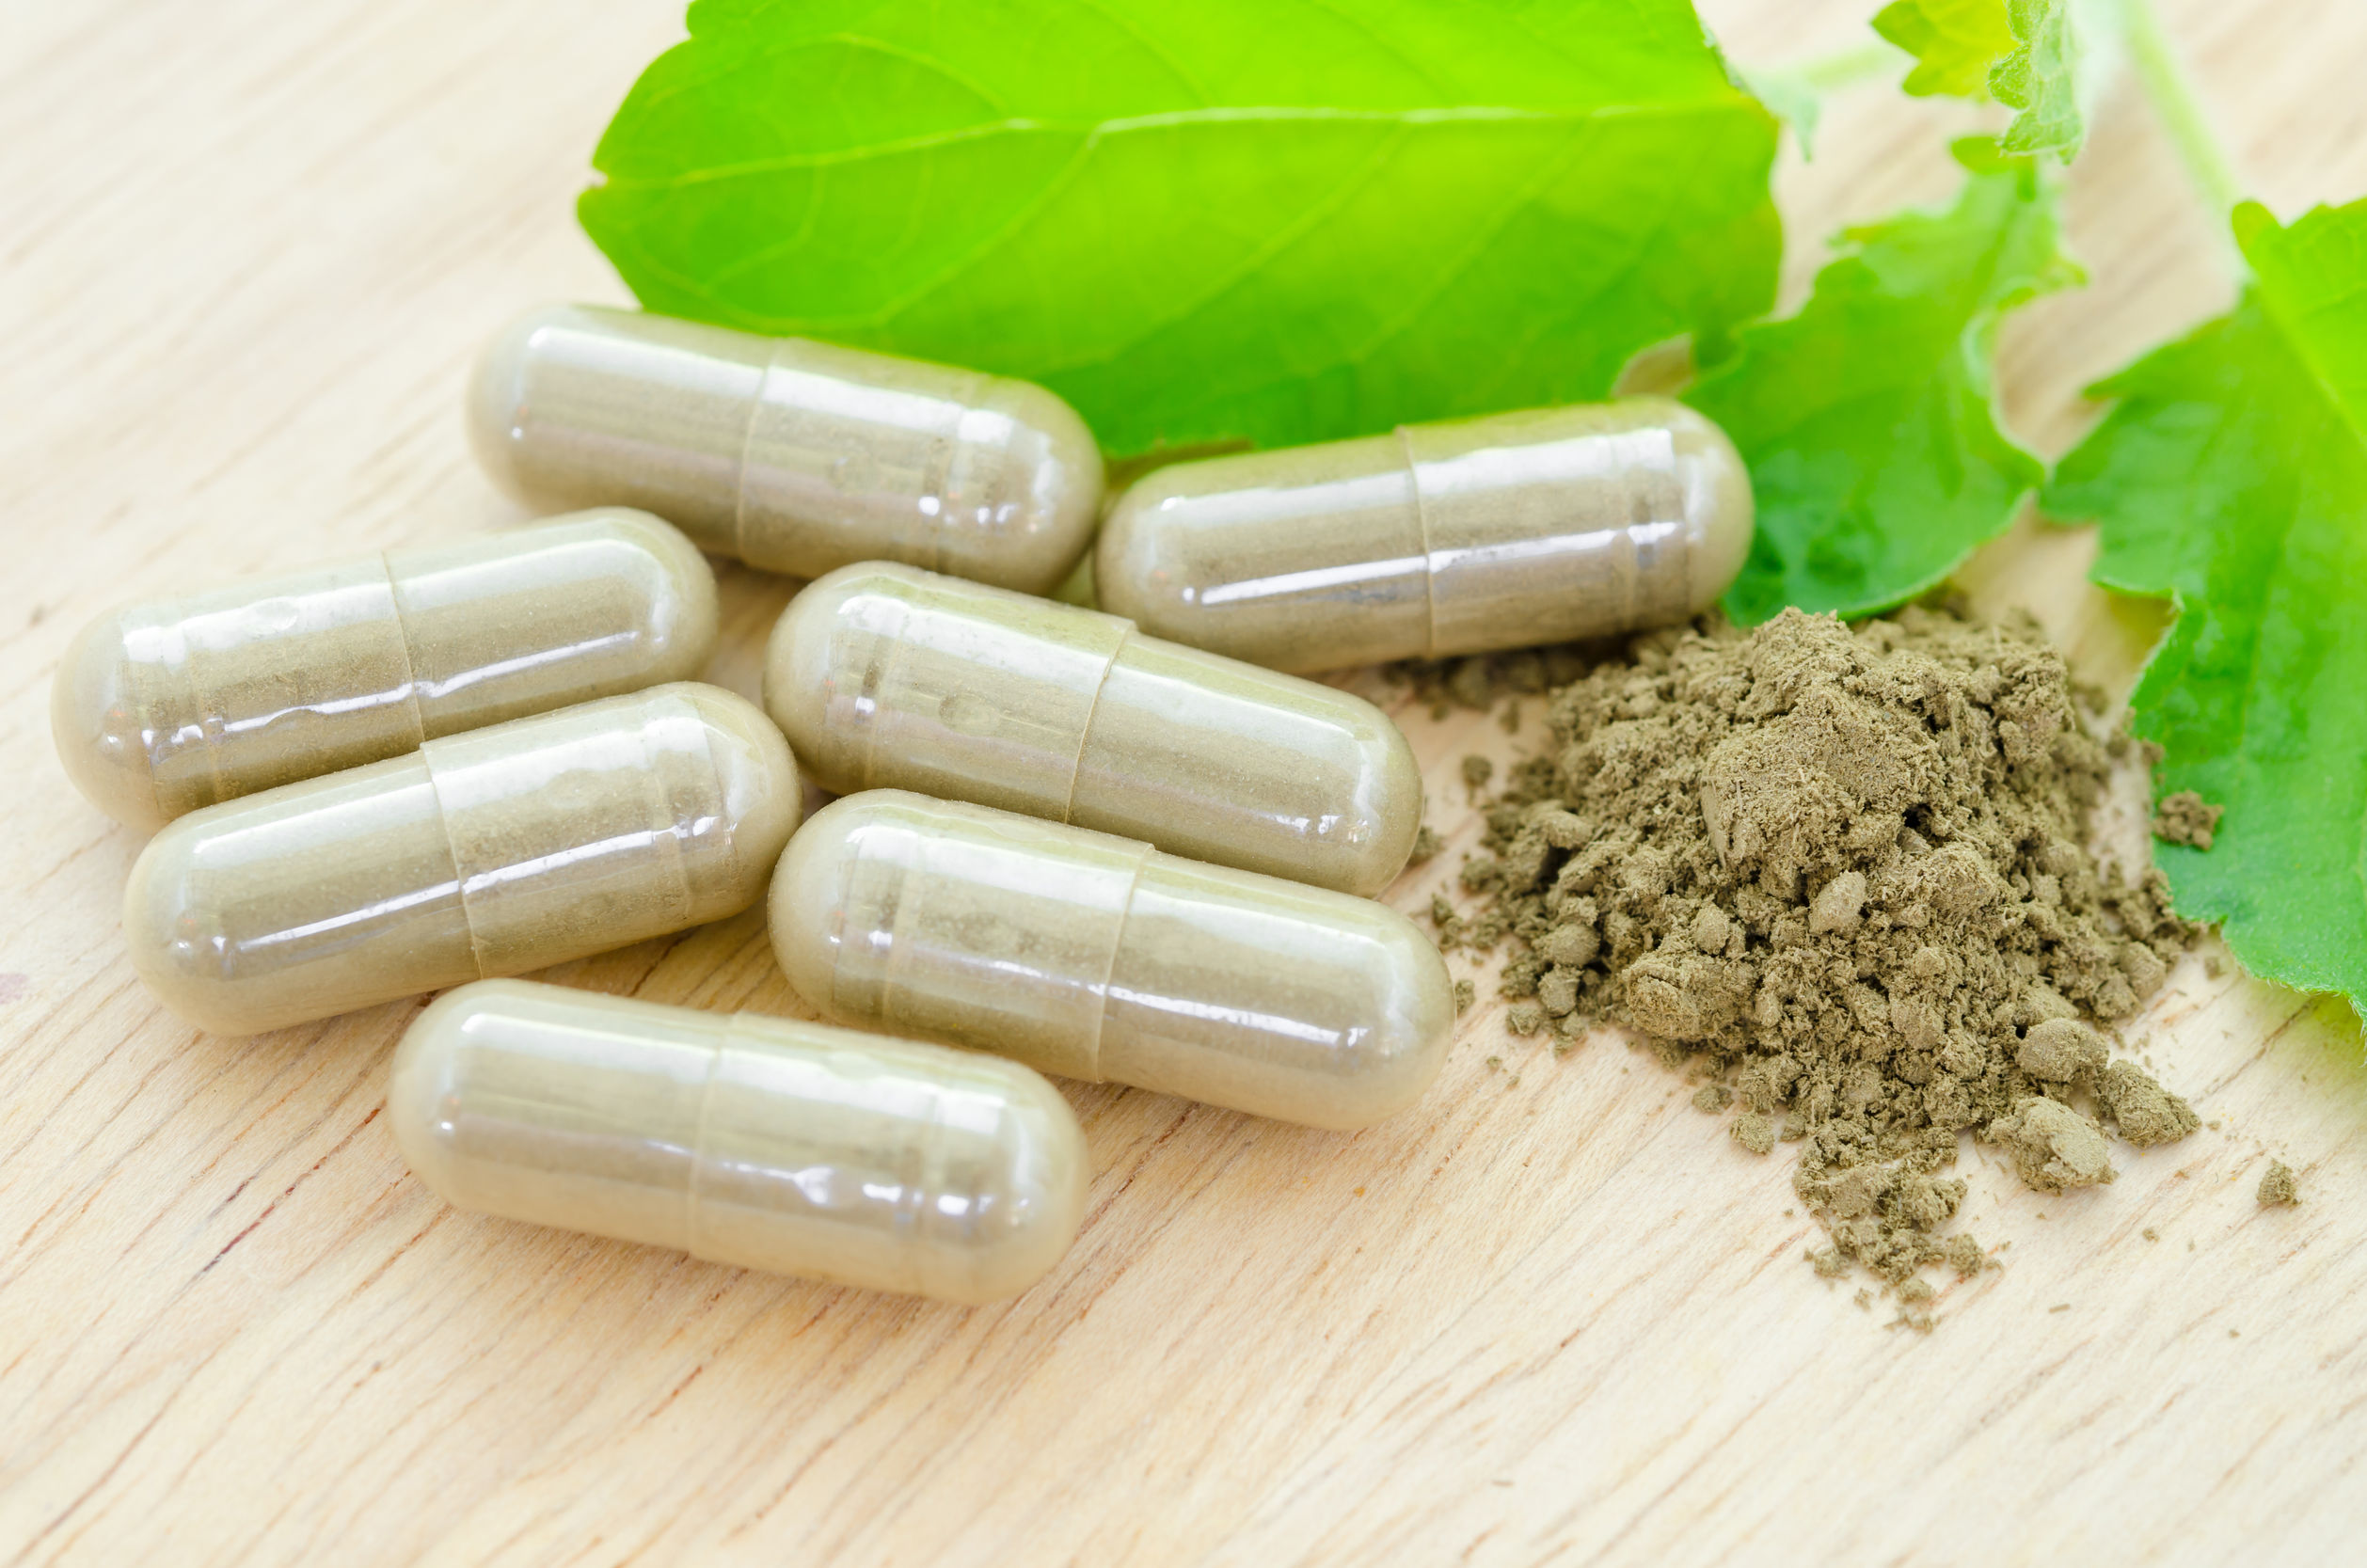 50243963 - herbal medicine capsules with green leaf on wooden background.